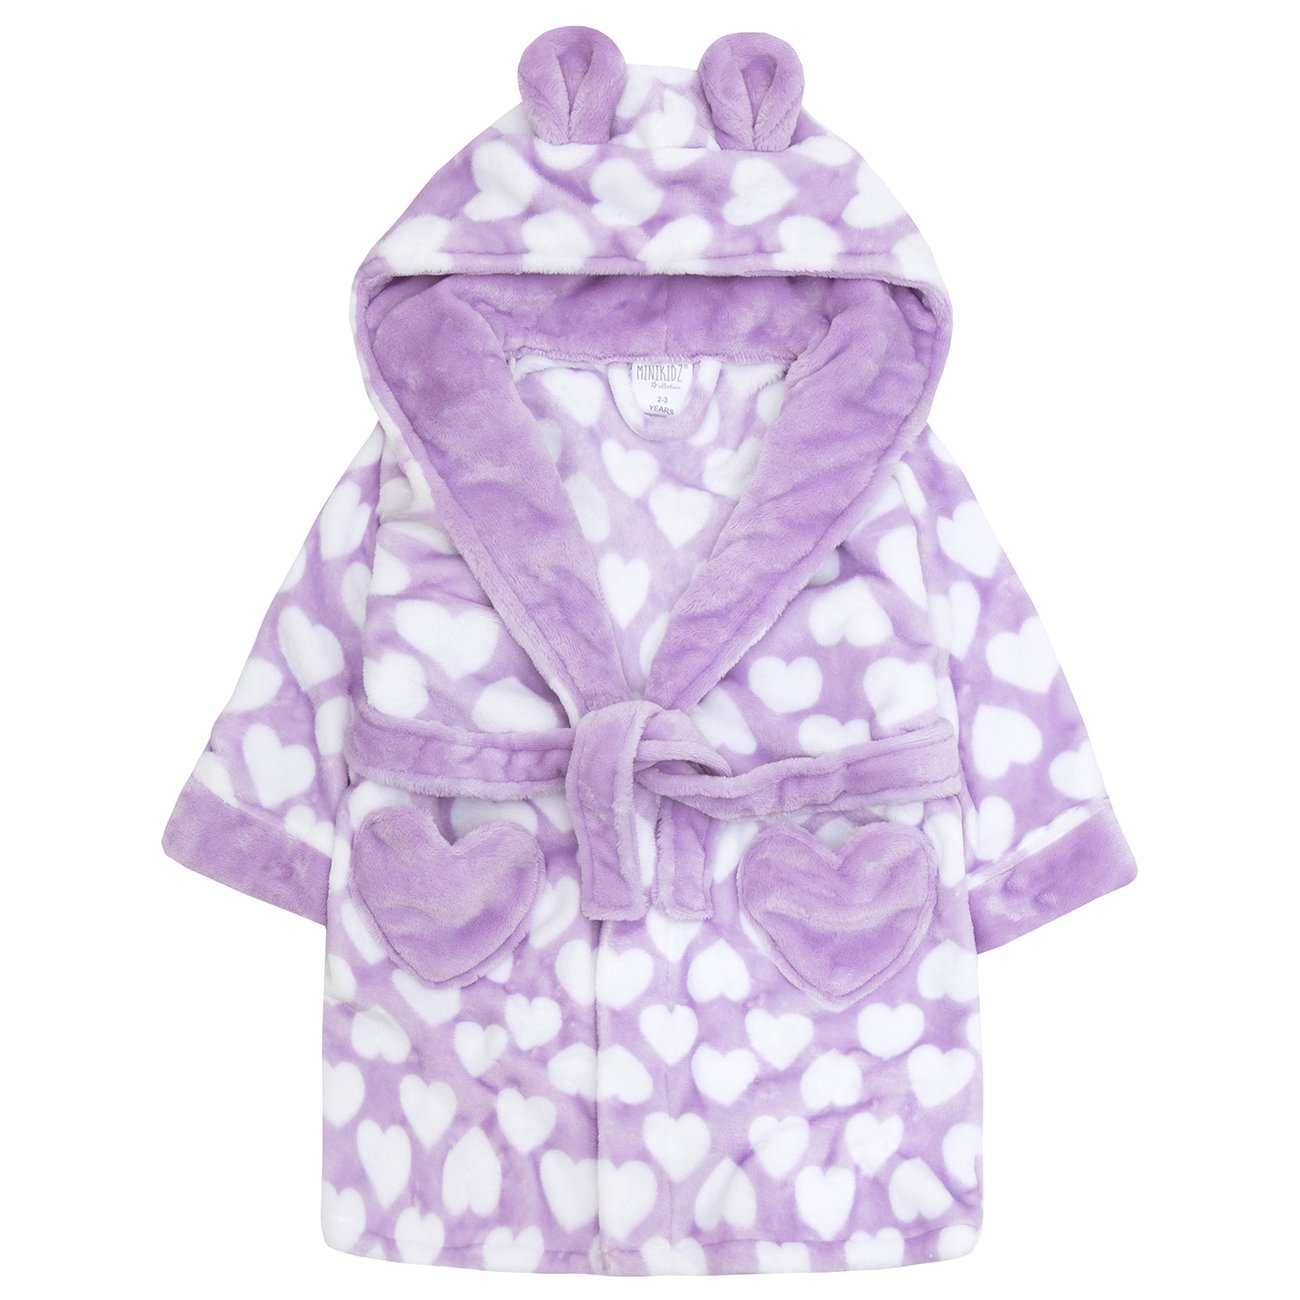 Girls / Childs Heart Printed Fleece Robe / Dressing Gown 3 Colours